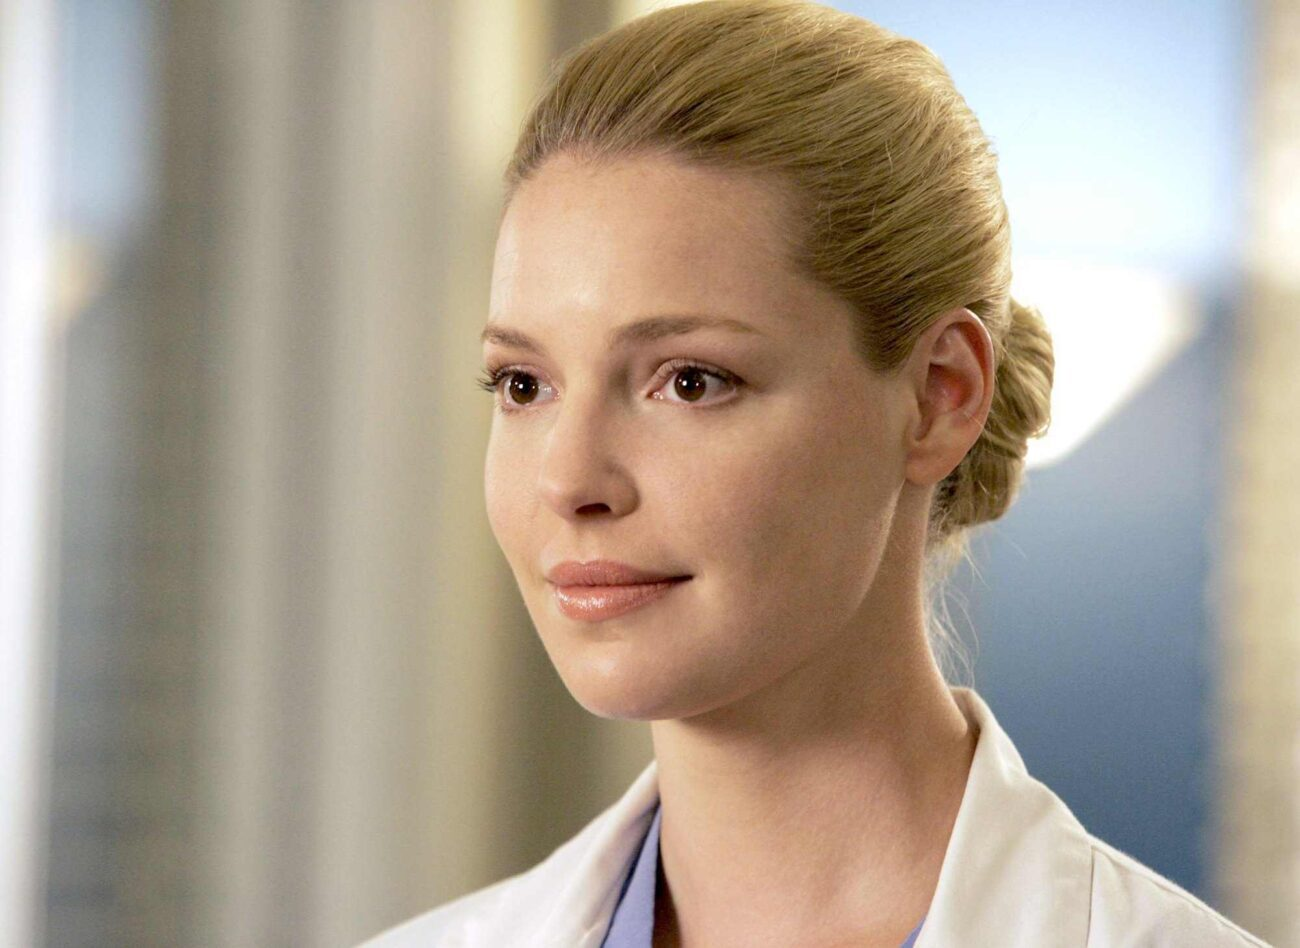 Why was Katherine Heigl's exit from 'Grey's Anatomy' so controversial? See what the actress revealed about her dramatic departure.